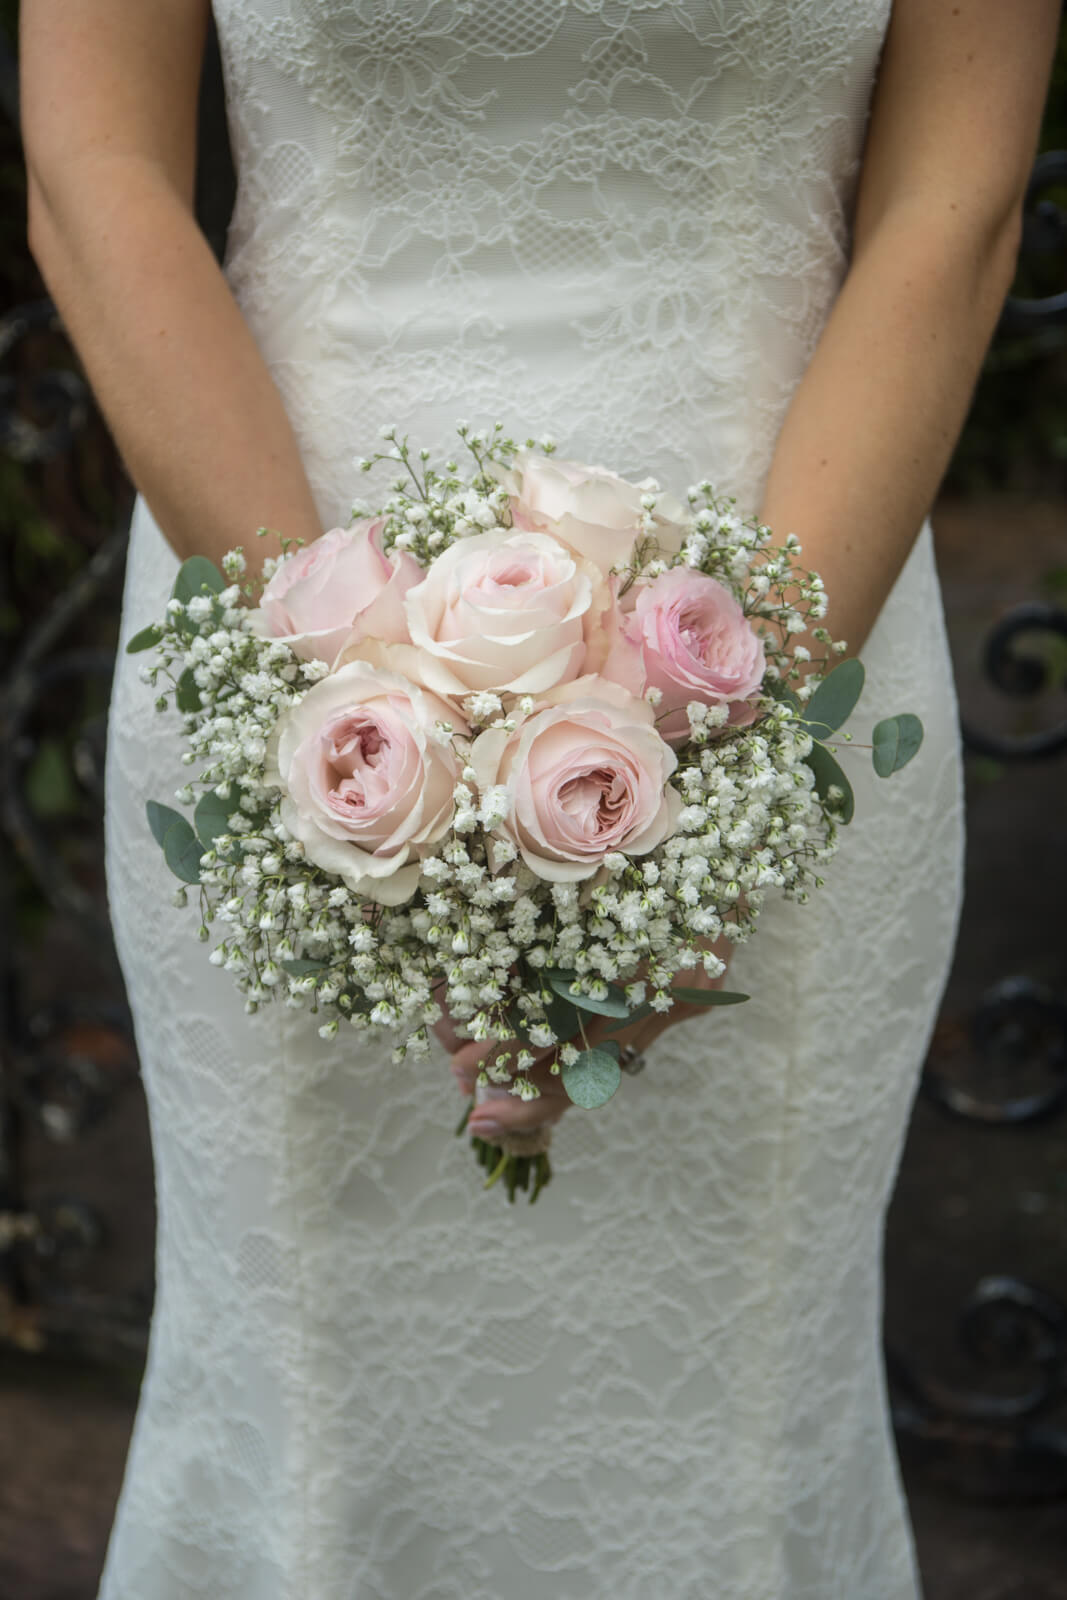 Bridal bouquet with pink david austin roses and gypsophila.